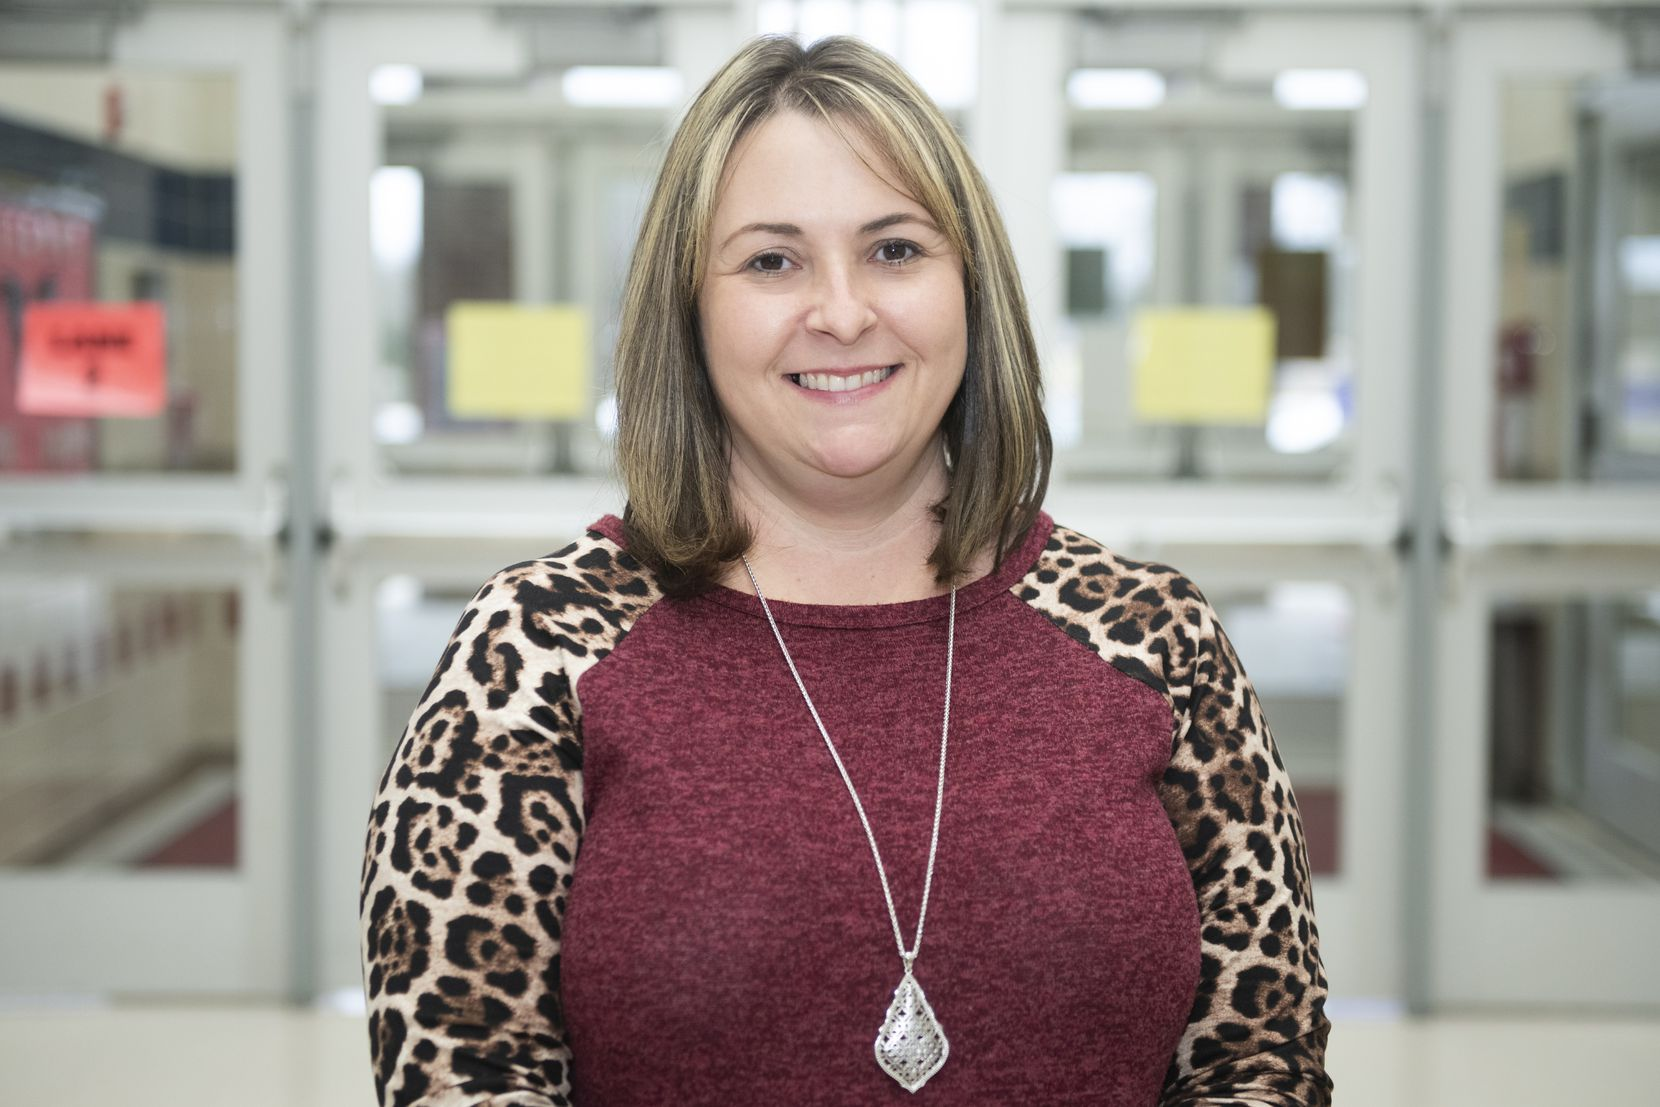 Stephanie Smith, a second-grade teacher at Mesquite's Henrie Elementary School, spends frequent afternoons meeting with students either virtually or in-person during the COVID-19 pandemic.